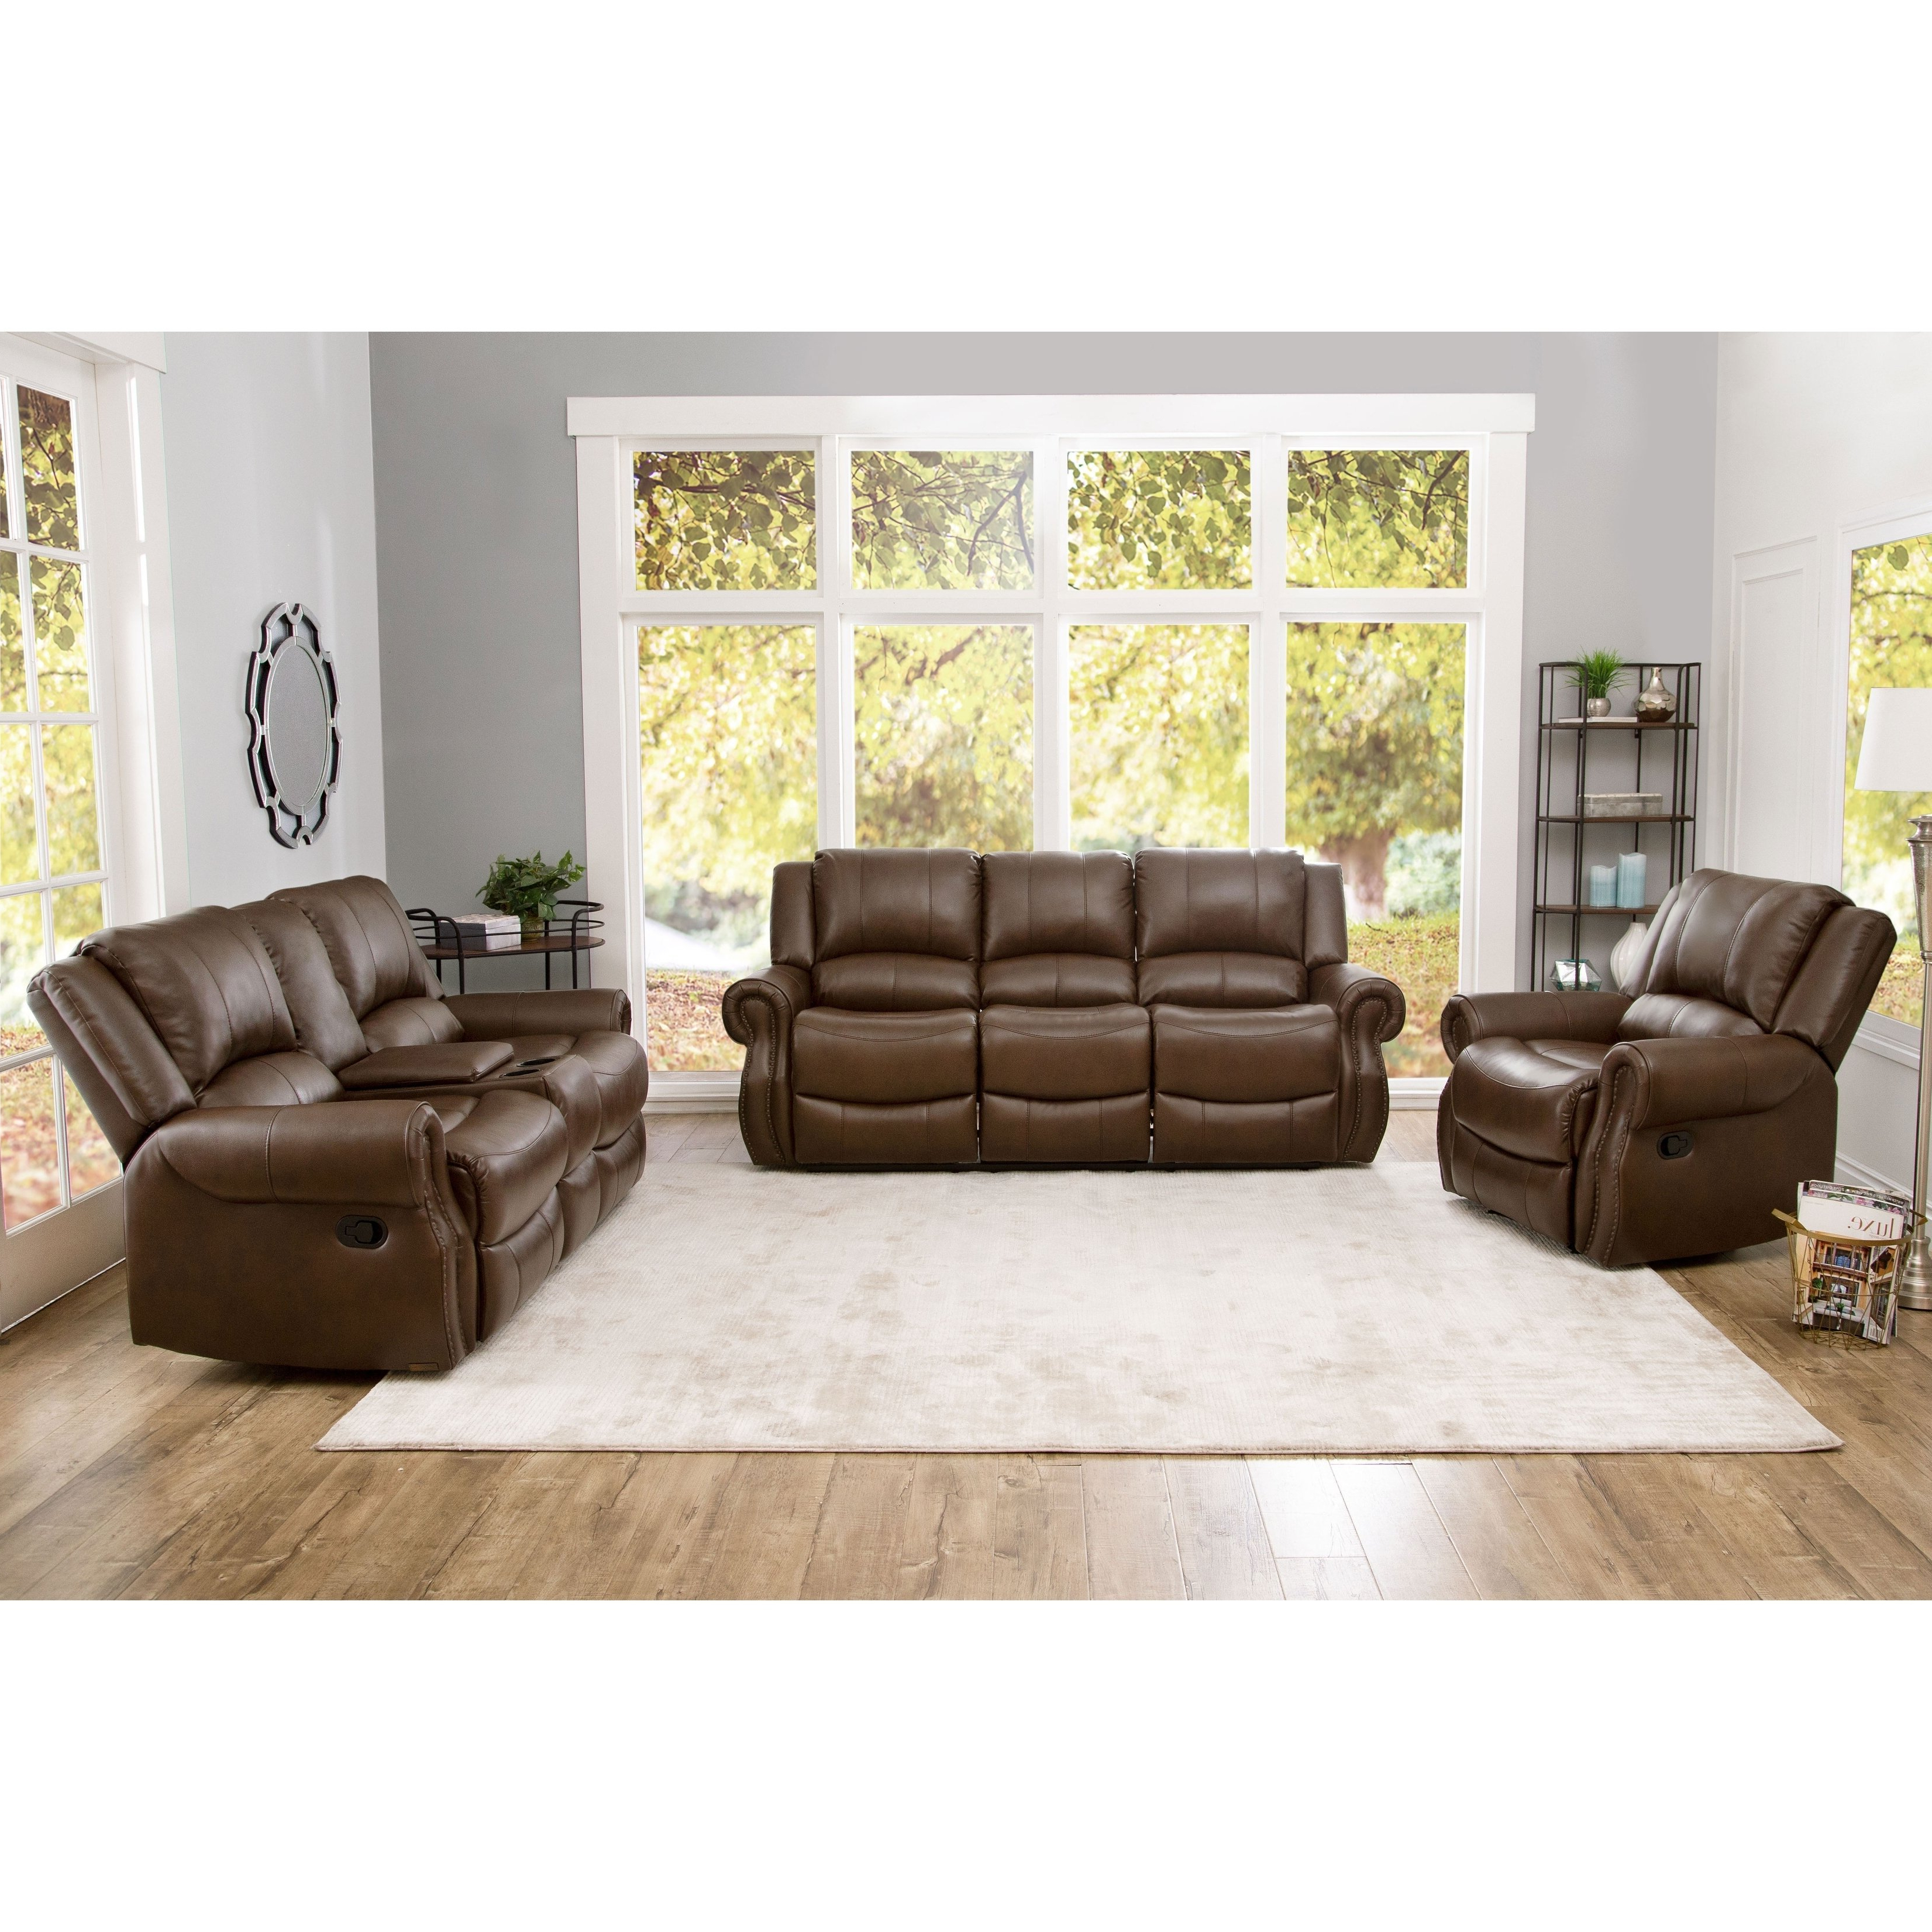 Shop Abbyson Calabasas Mesa Brown Leather 3 Piece Reclining Living With Regard To Well Known Mesa Foam Oversized Sofa Chairs (Gallery 12 of 20)